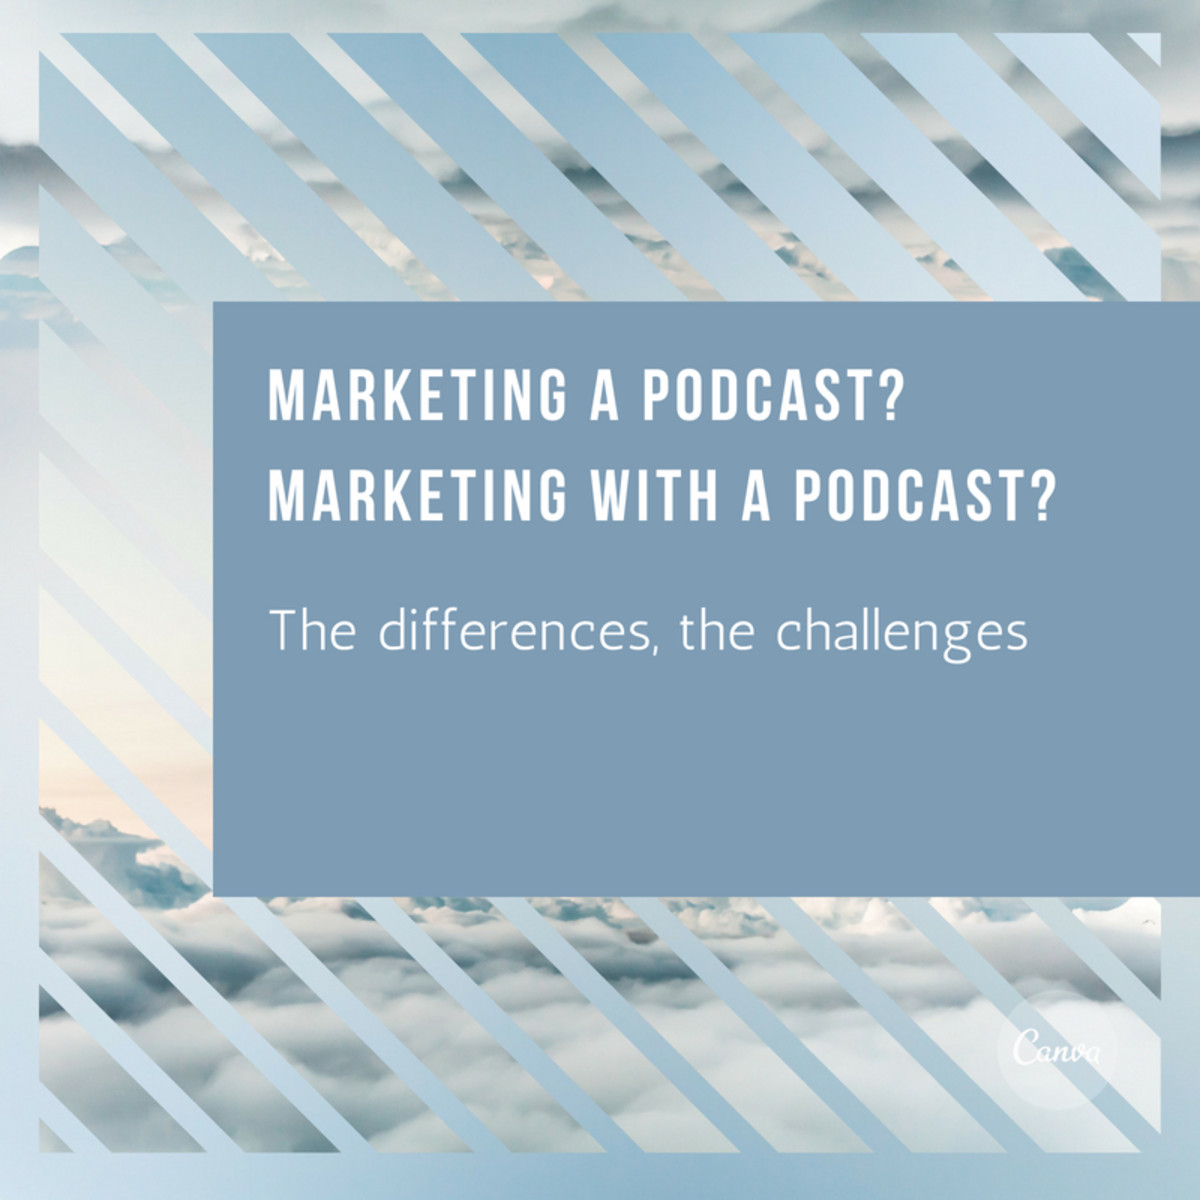 Marketing a Podcast and Marketing With Podcasts: The Challenges of Both